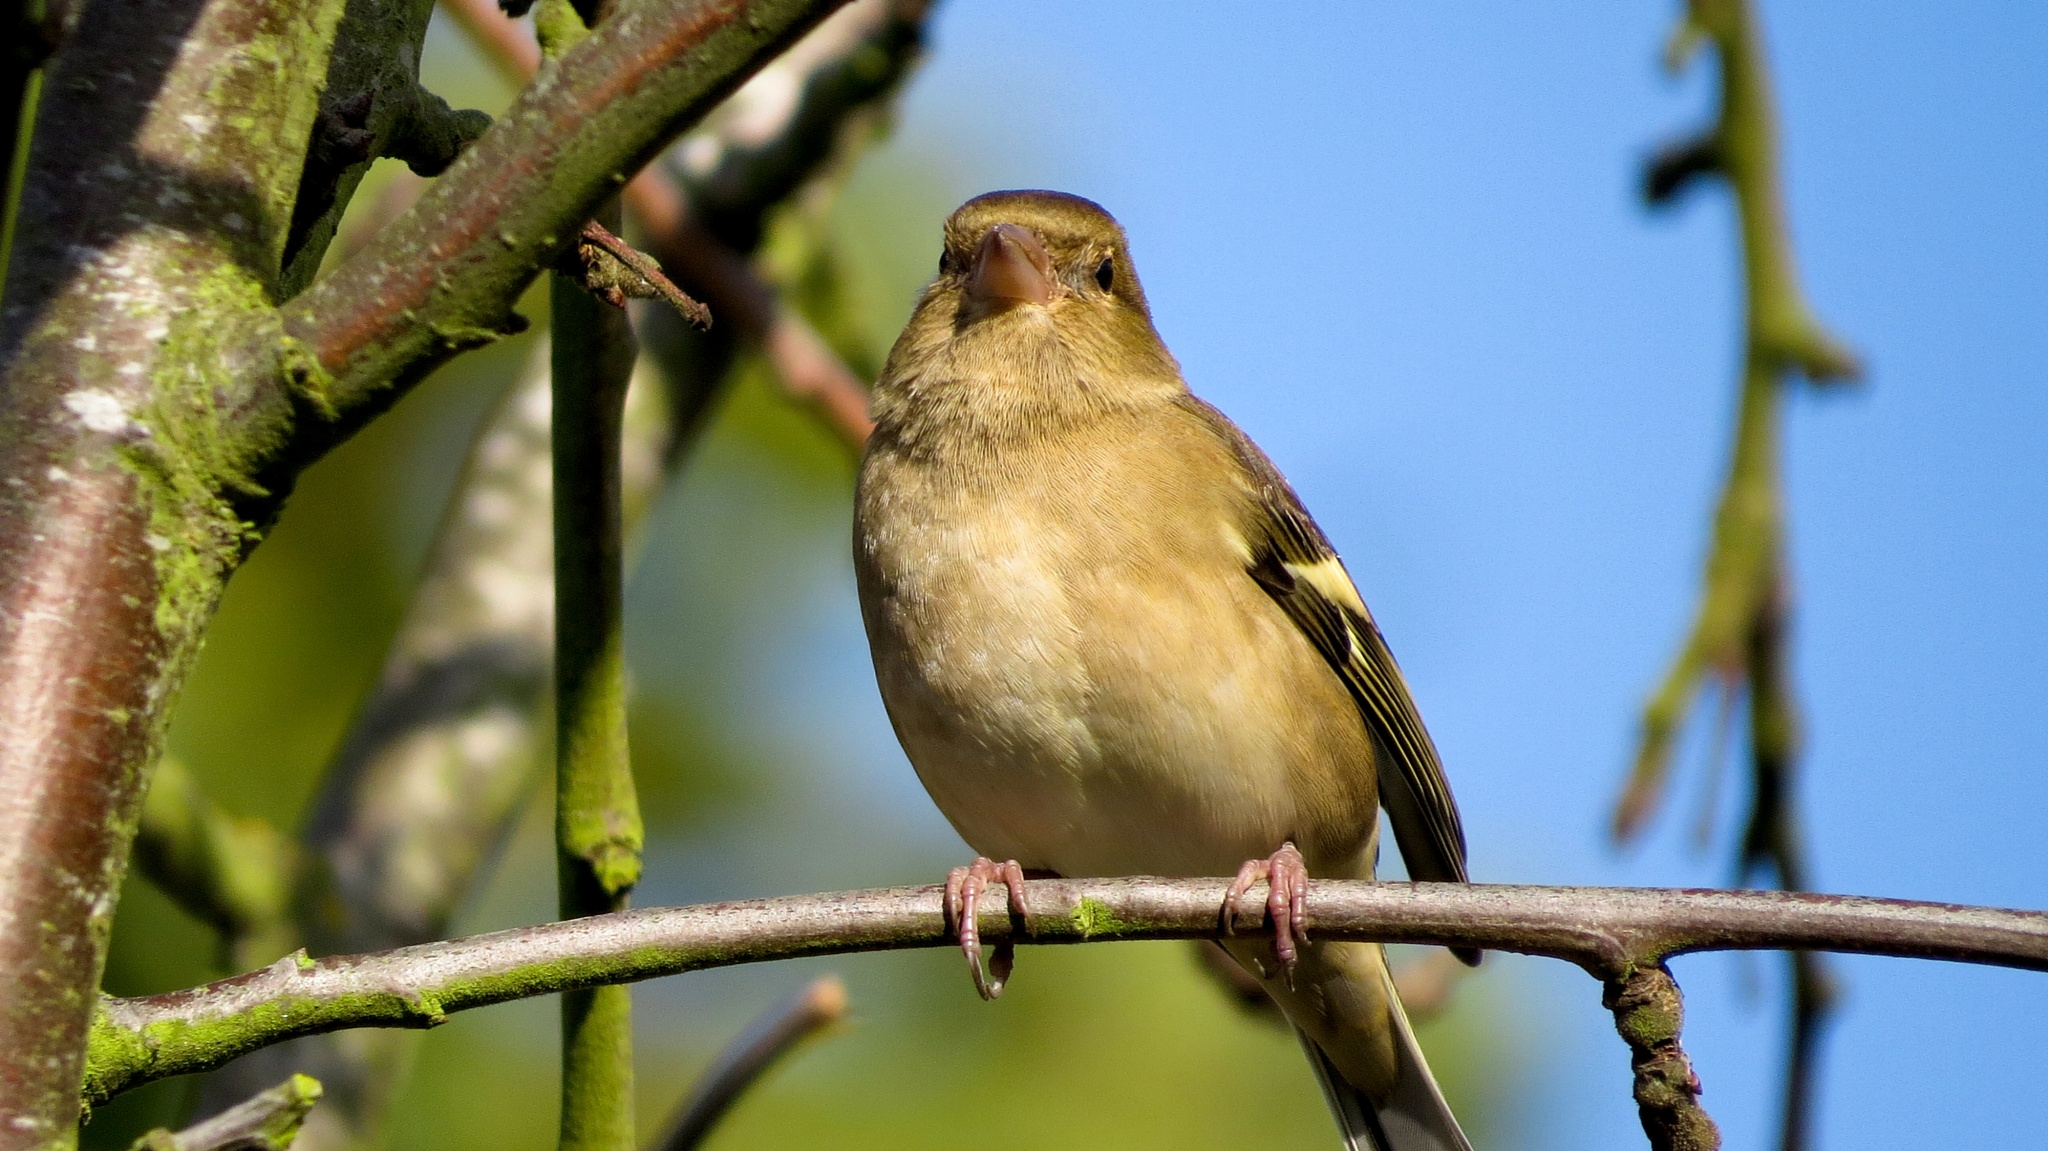 Chaffinch in the tree. by June